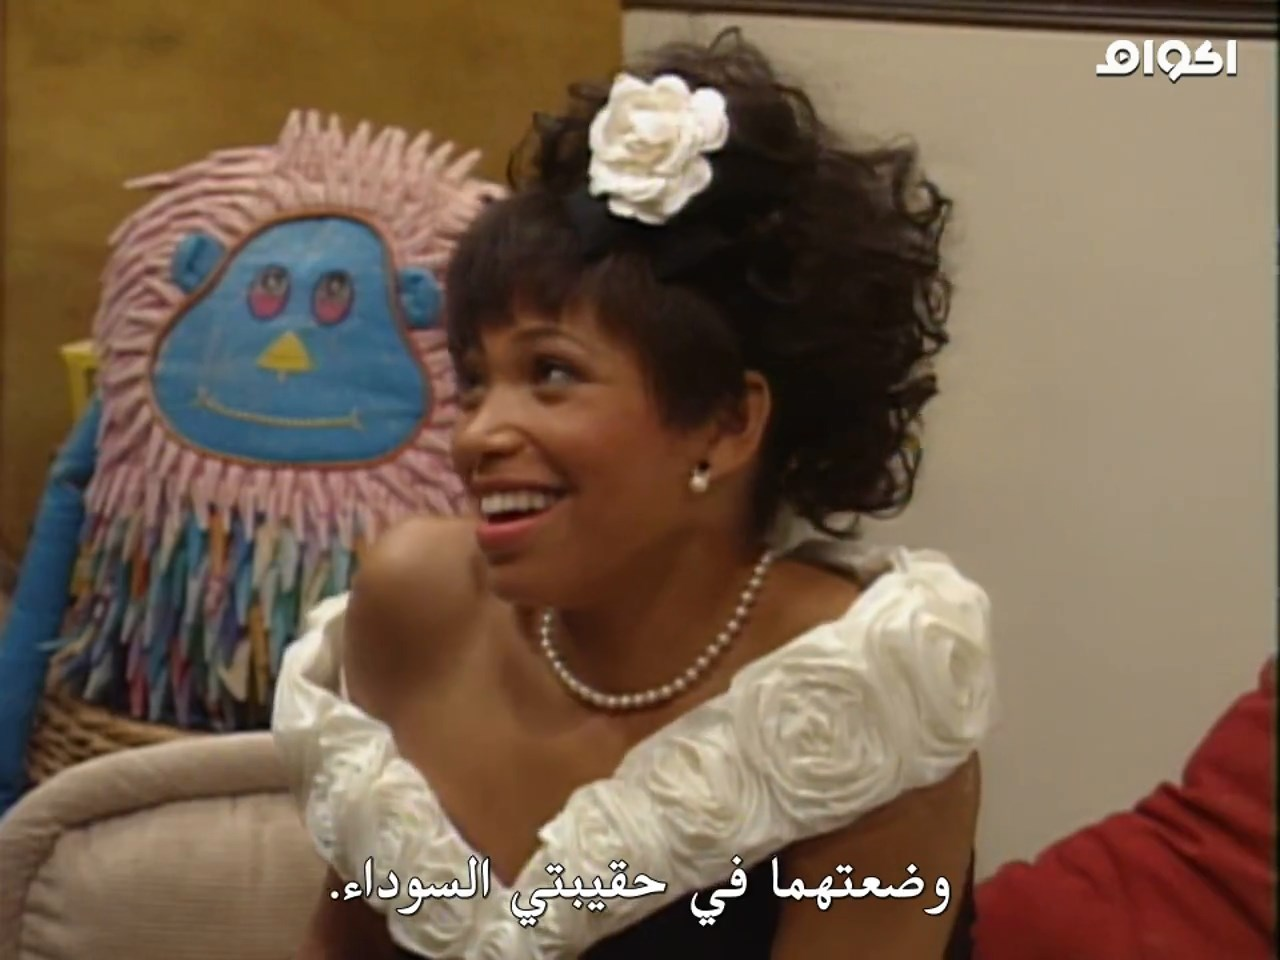 The Fresh Prince of Bel-Air,The Fresh Prince of Bel-Air S02,The Fresh Prince of Bel-Air Season 2,The Fresh Prince of Bel-Air مترجم,The Fresh Prince of Bel-Air Will Smith,ويل سميث